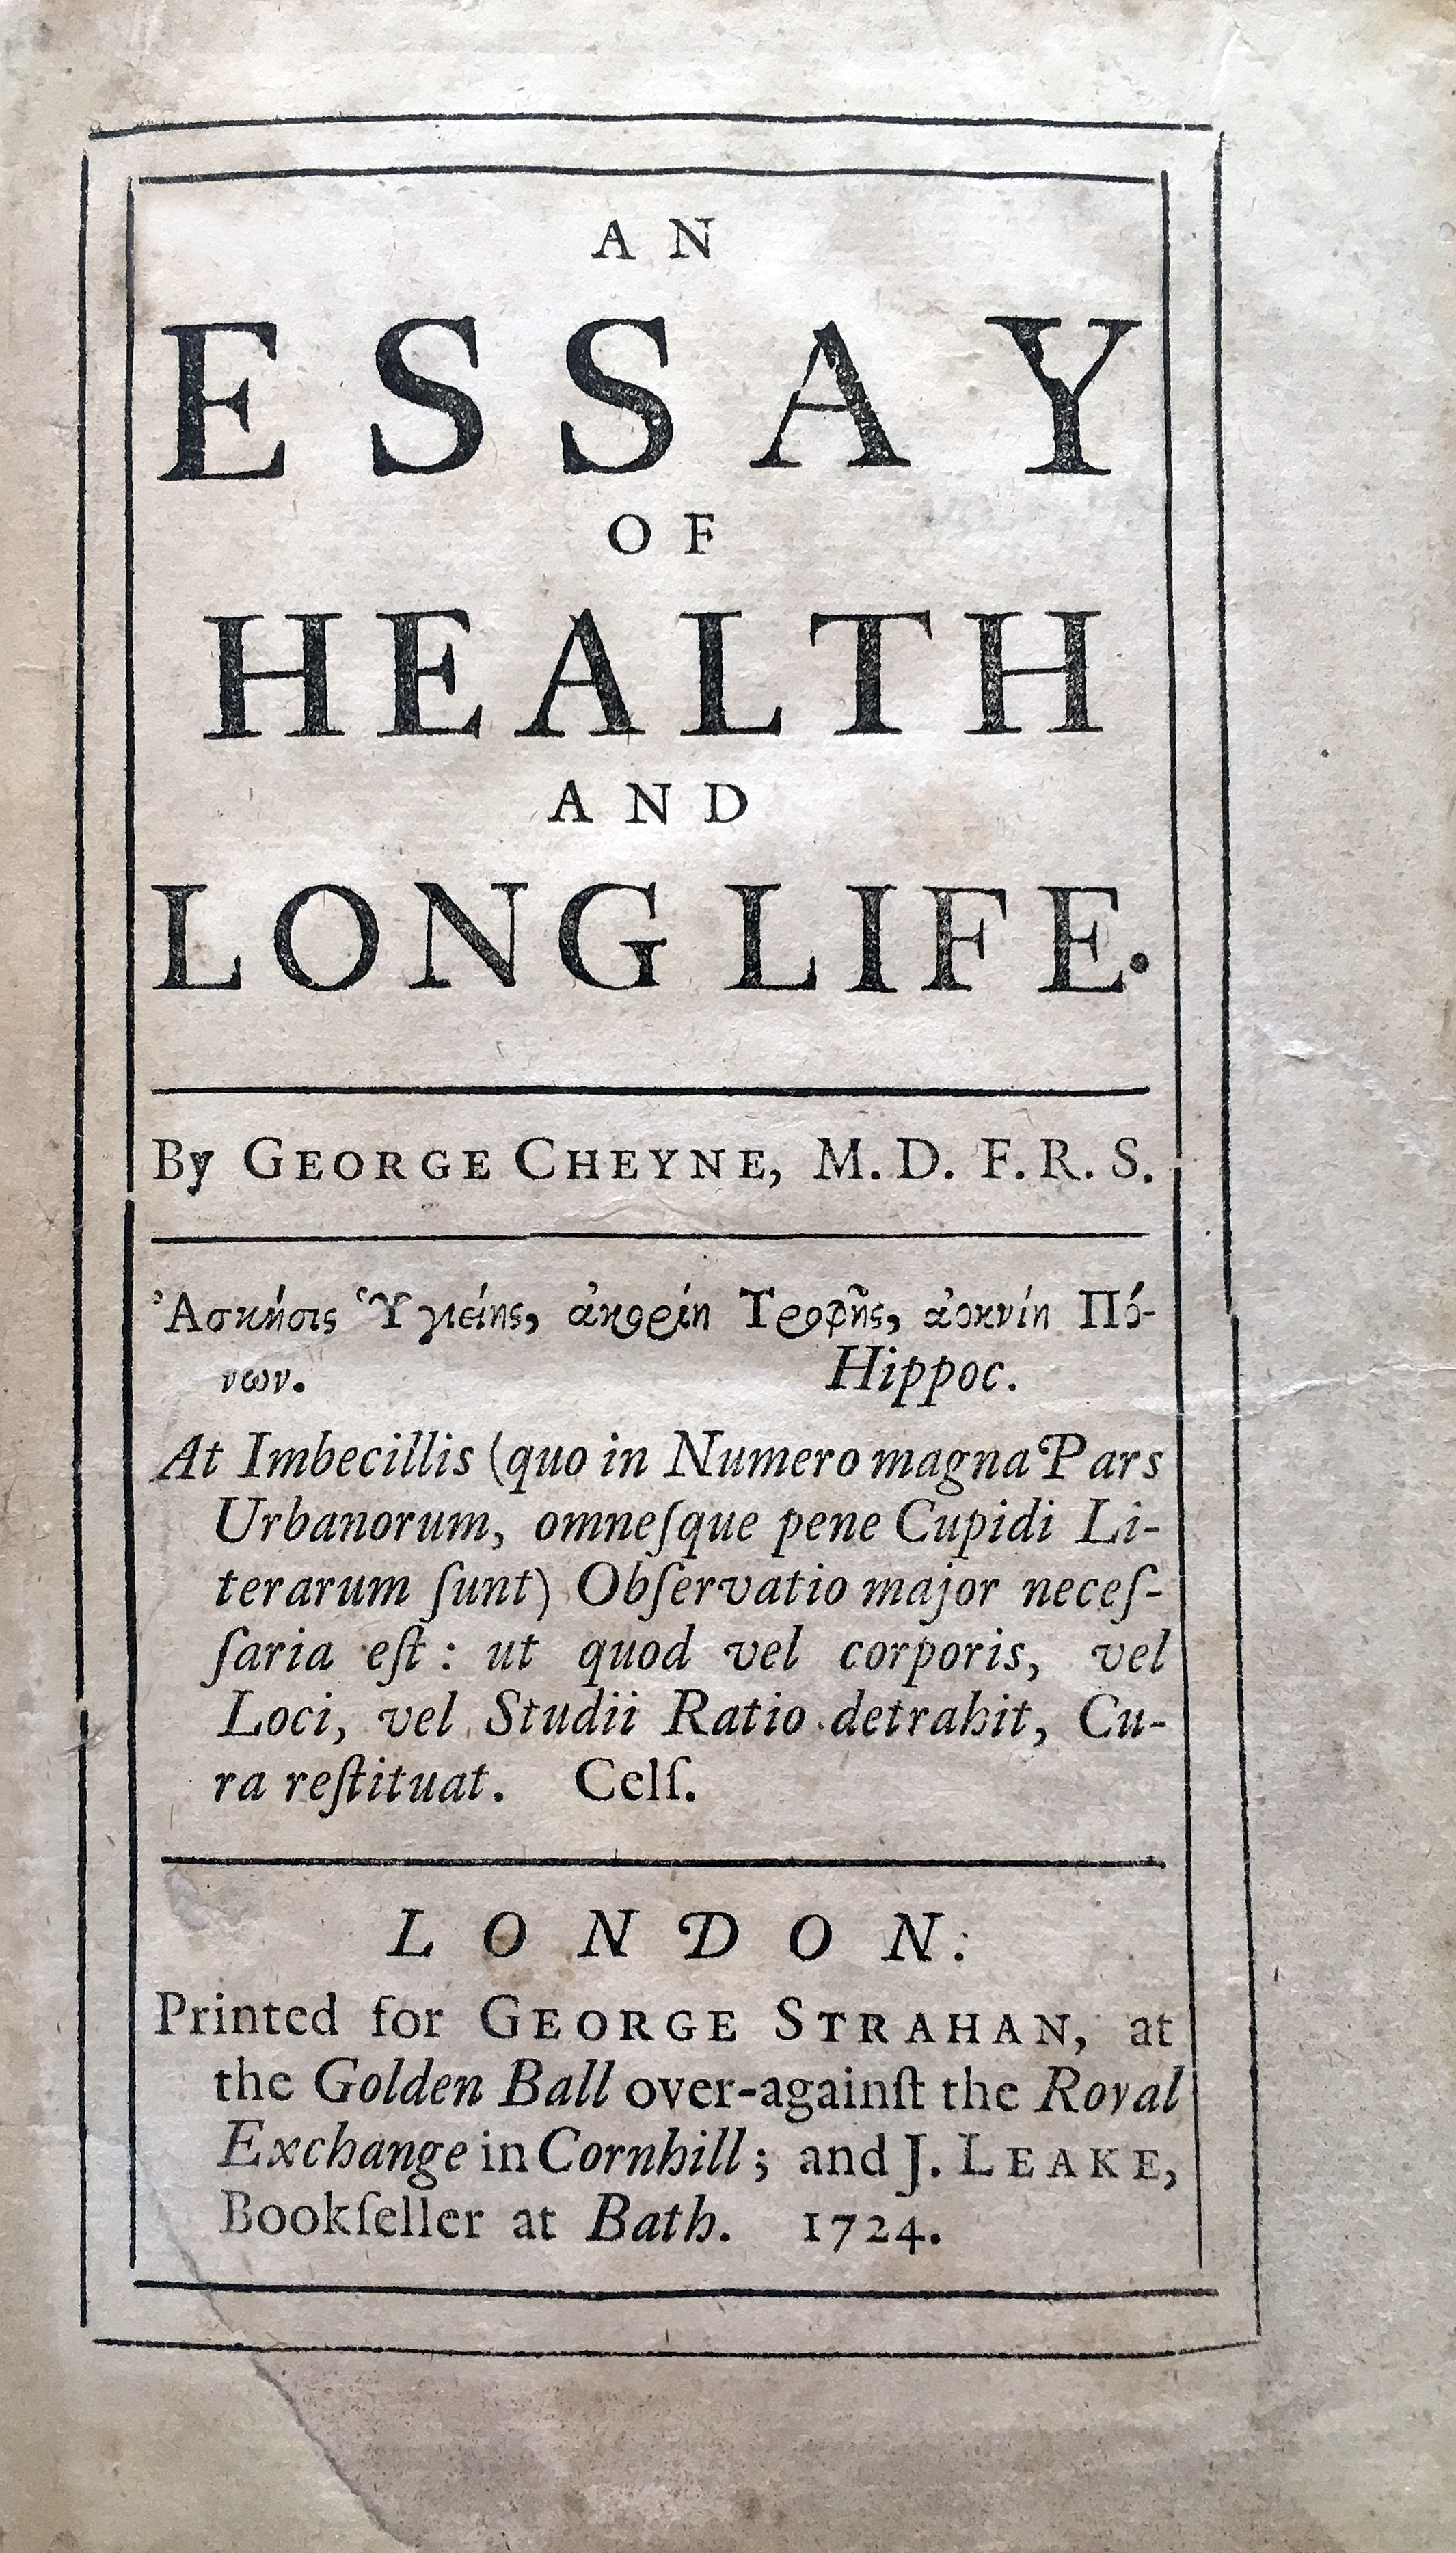 filegeorge cheynes essay of health and long lifejpg  wikimedia  filegeorge cheynes essay of health and long lifejpg